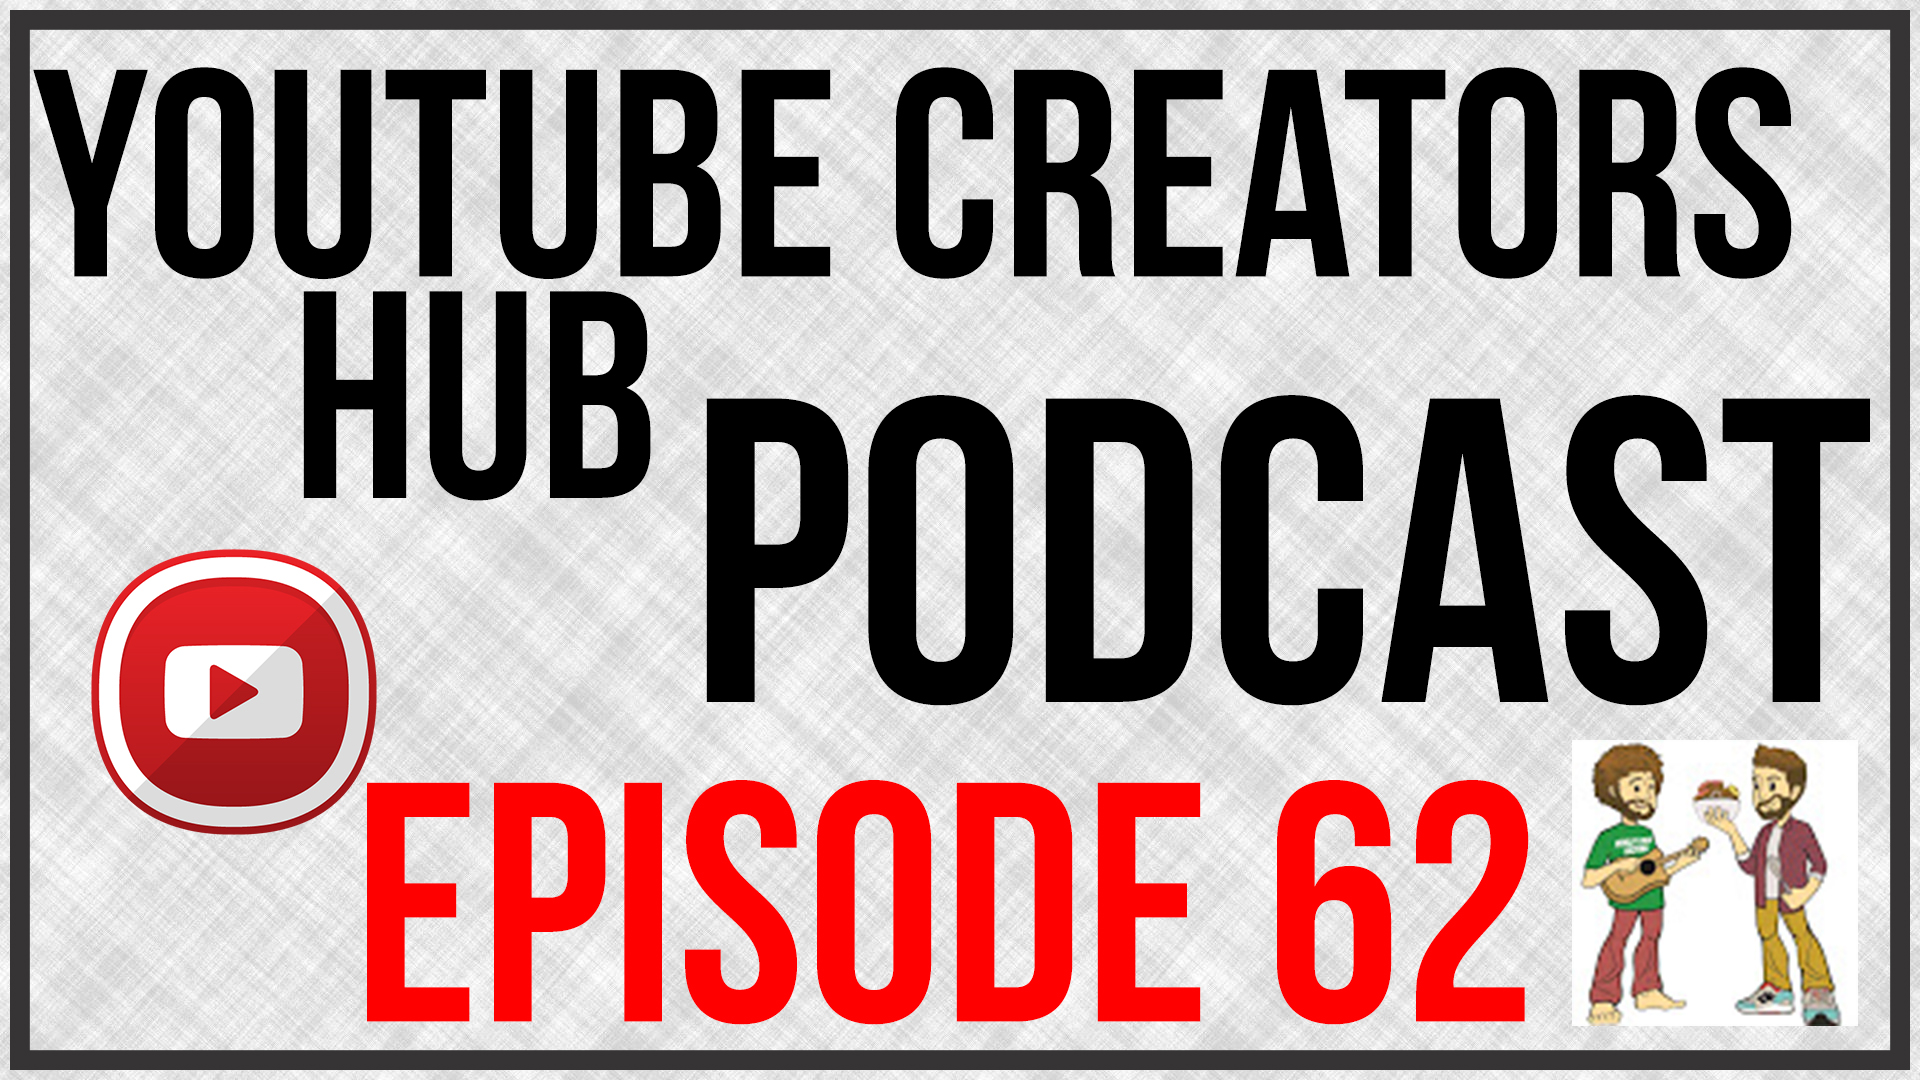 YouTube Creators Hub Podcast Episode 062